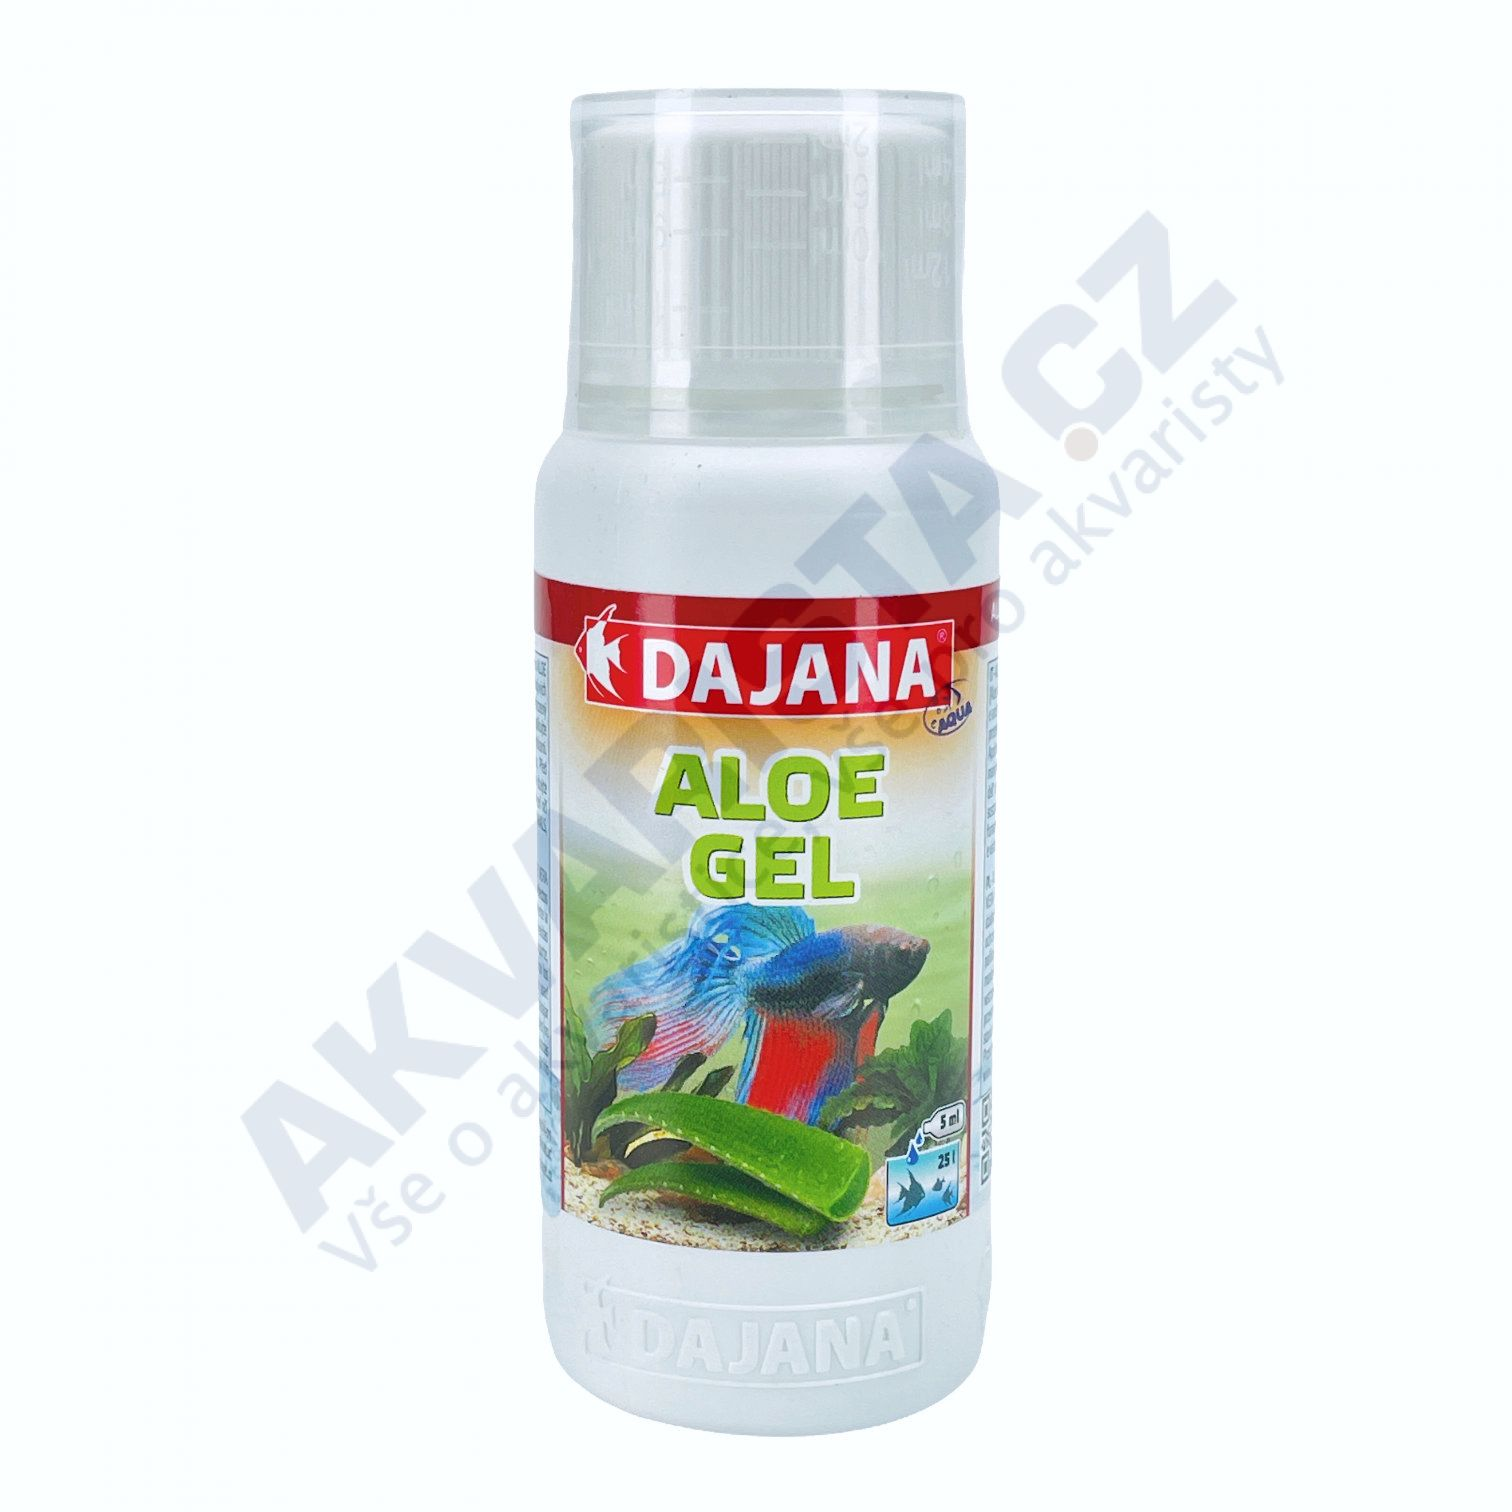 Dajana ALOE gel 5000ml